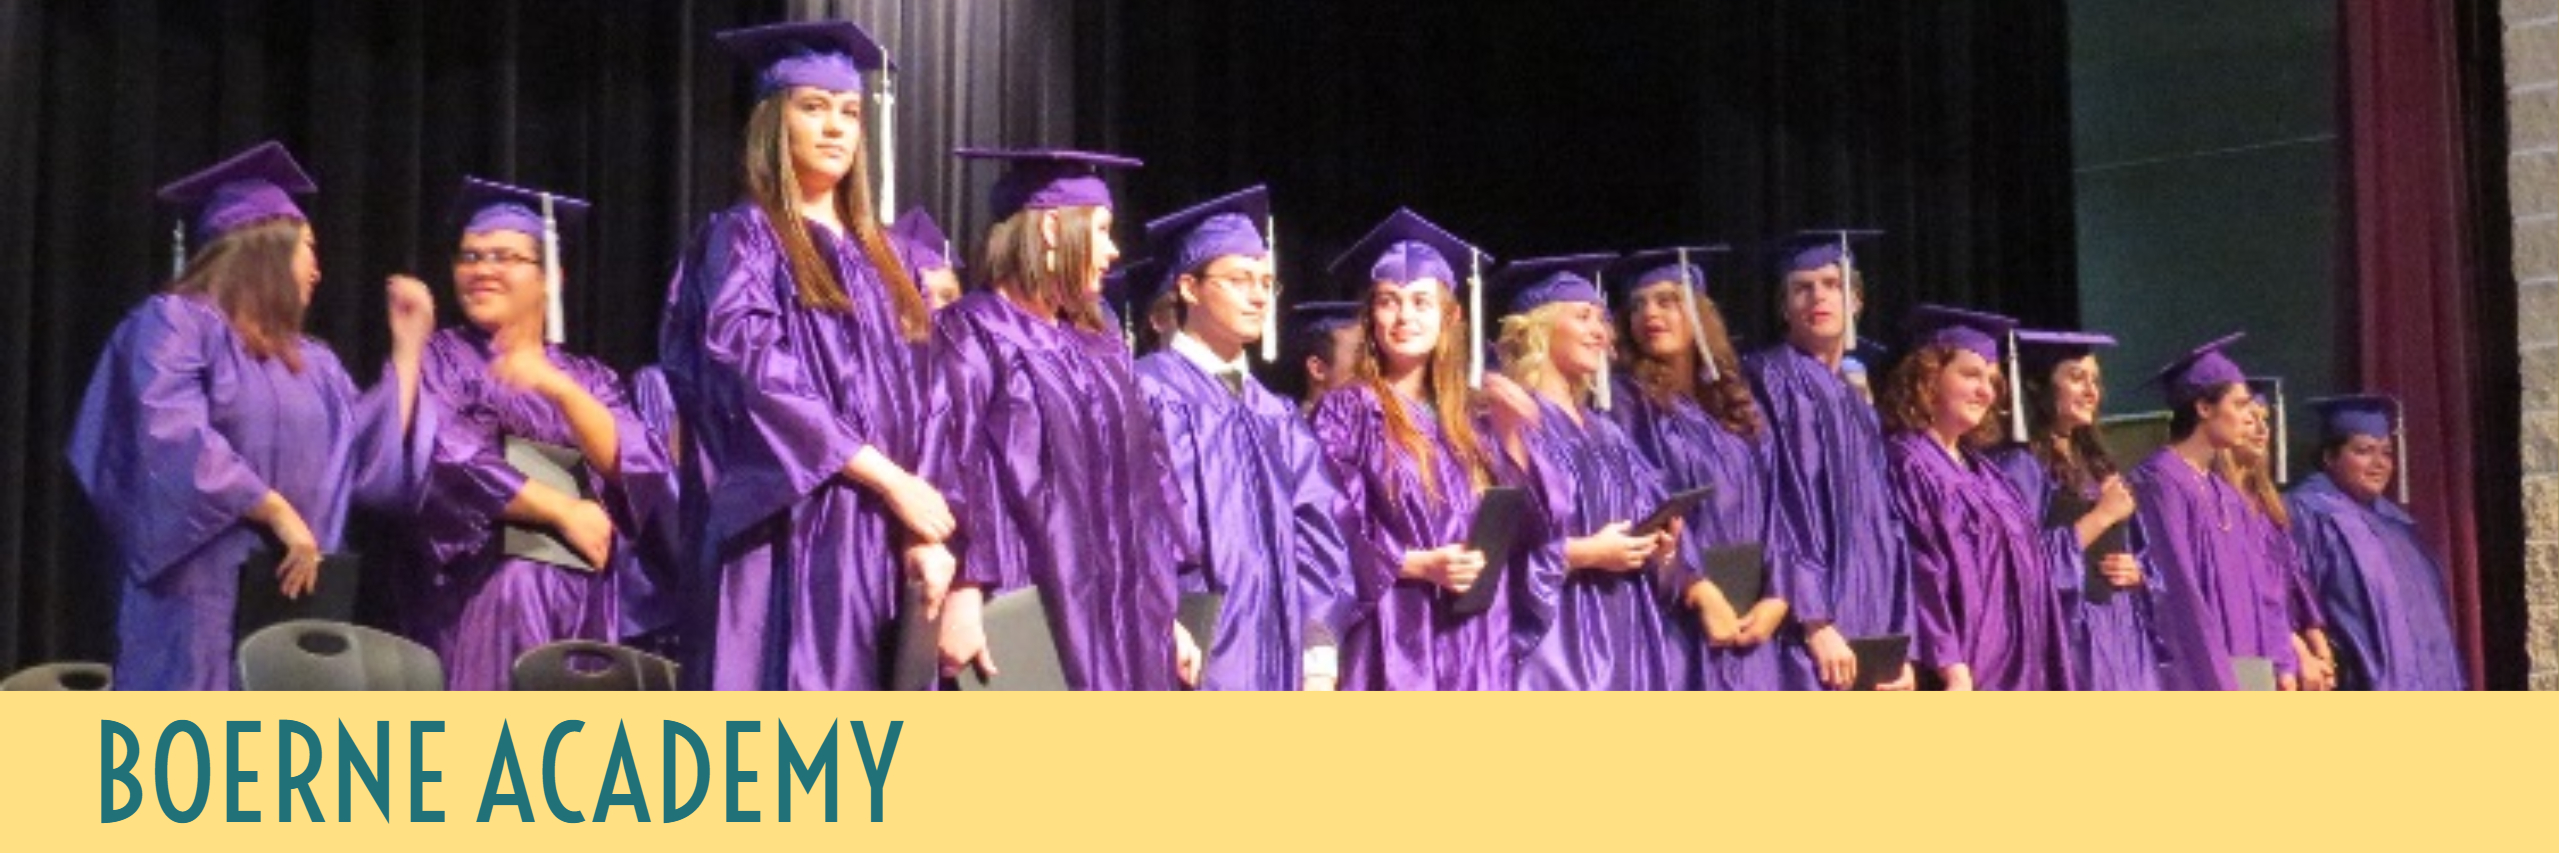 Boerne Academy banner, students graduating